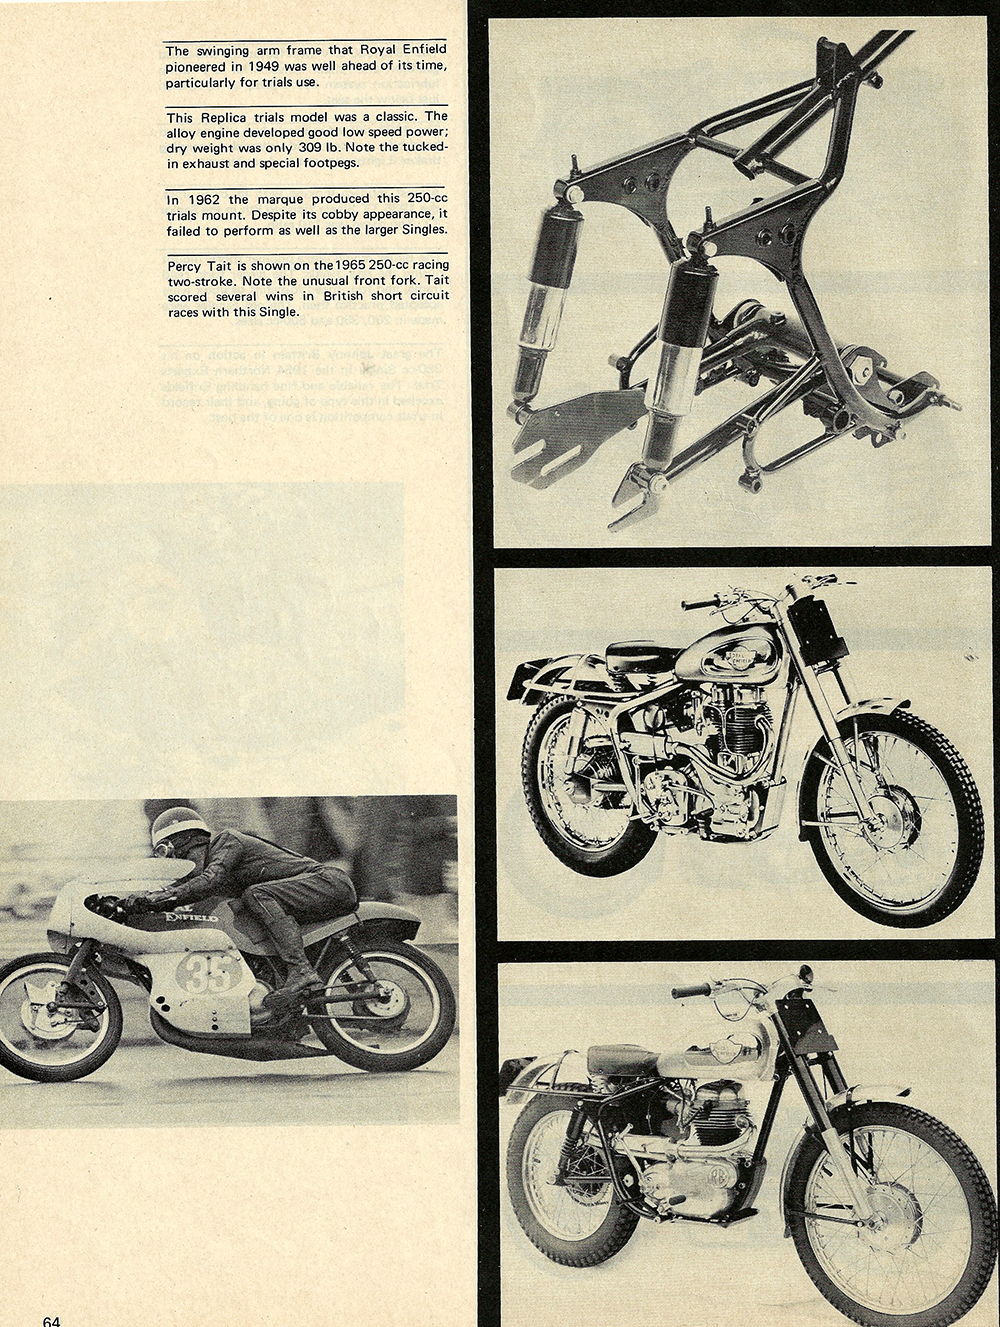 1970 History of Royal Enfield 03.jpg